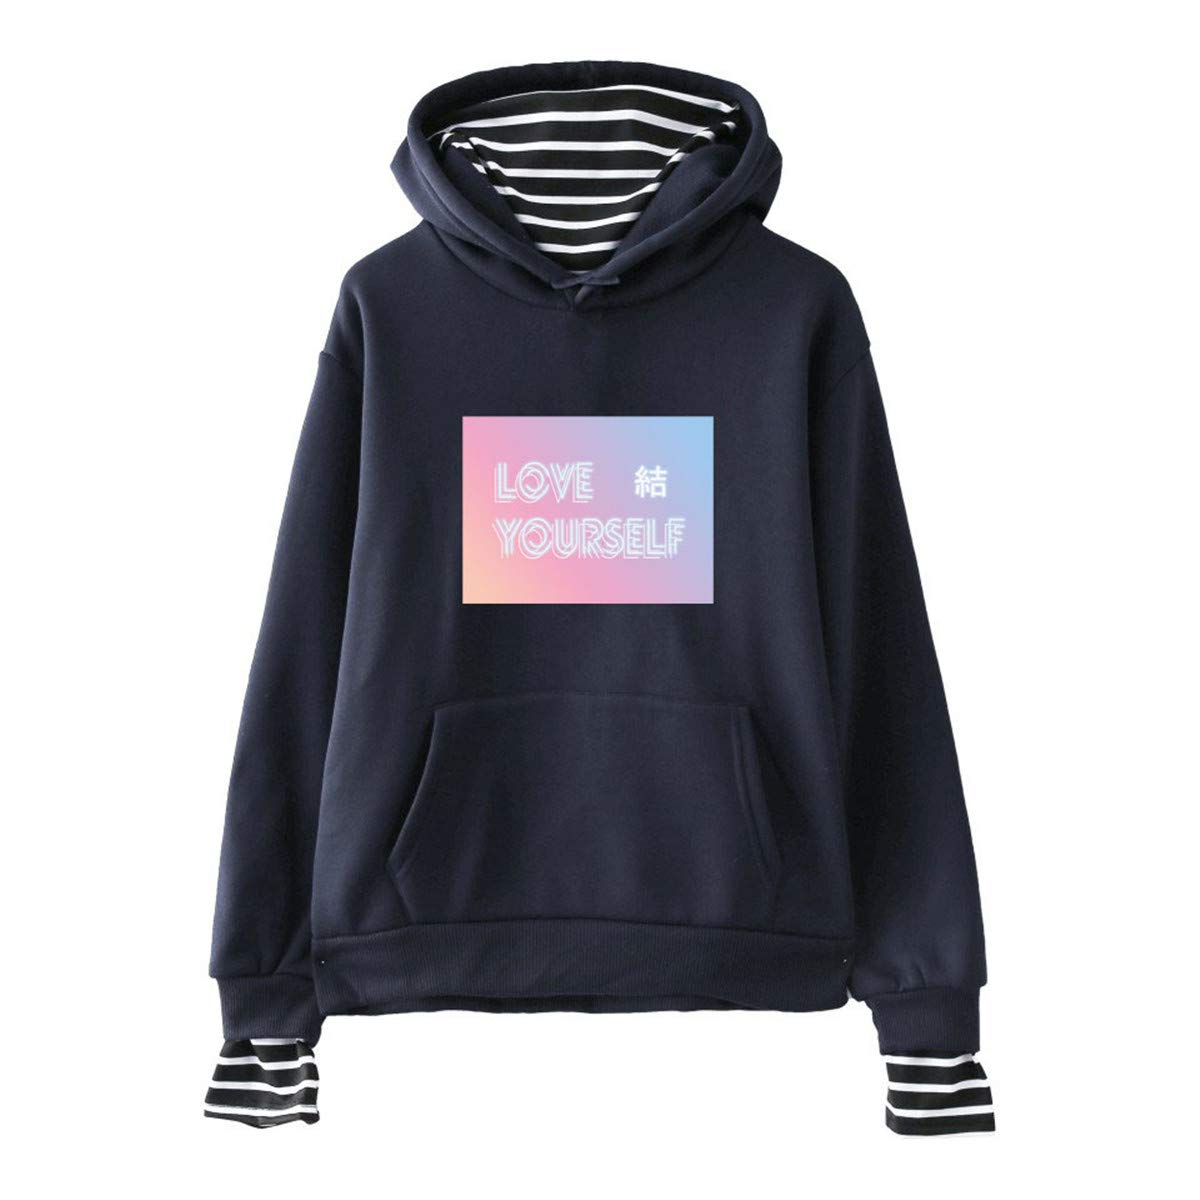 ATIWING BTS Love Yourself Logo Sweater Monster Hoodie Unisex Sweatershirt